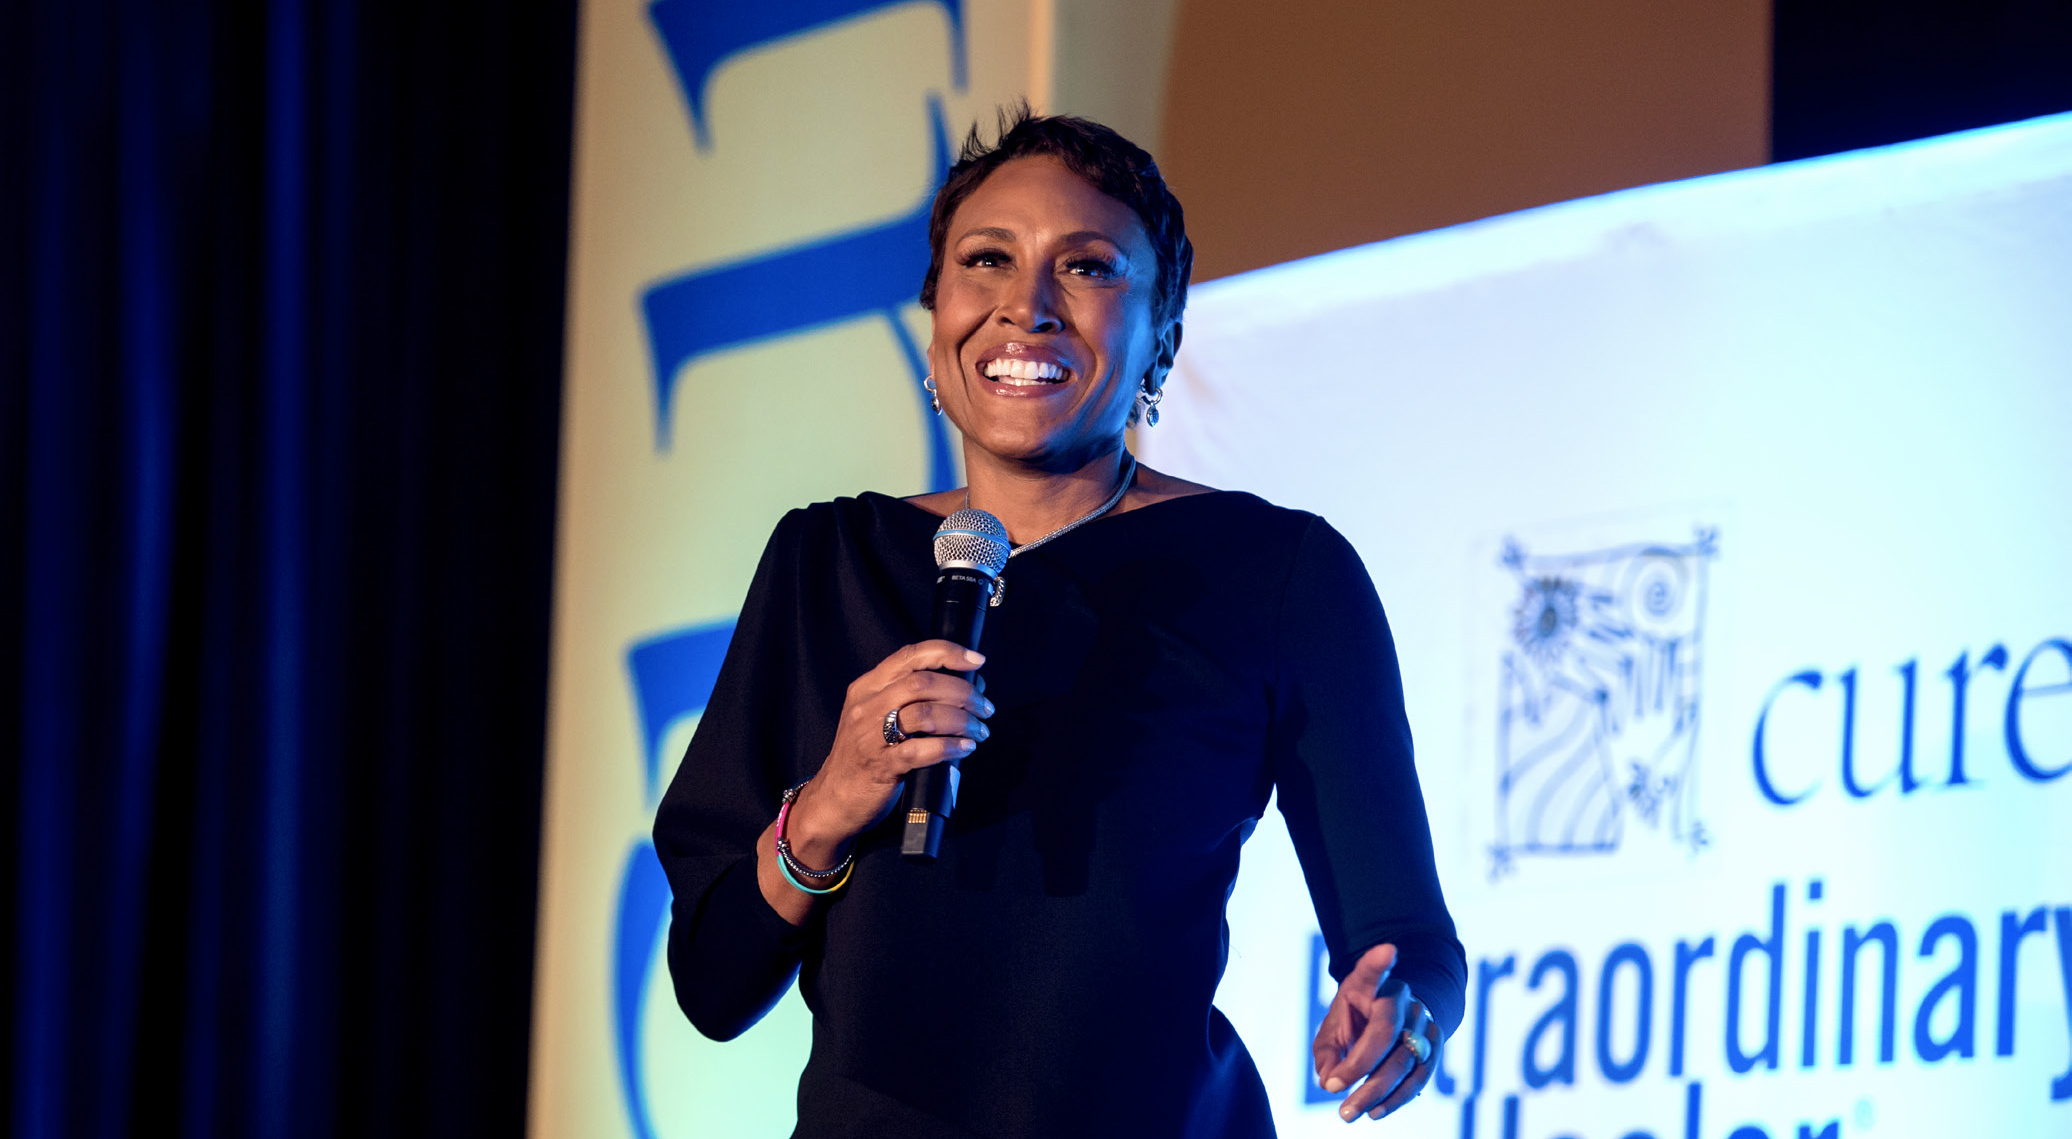 ROBIN ROBERTS speaks to the crowd at the 2018 Extraordinary Healer event. - PHOTO BY RICH KESSLER